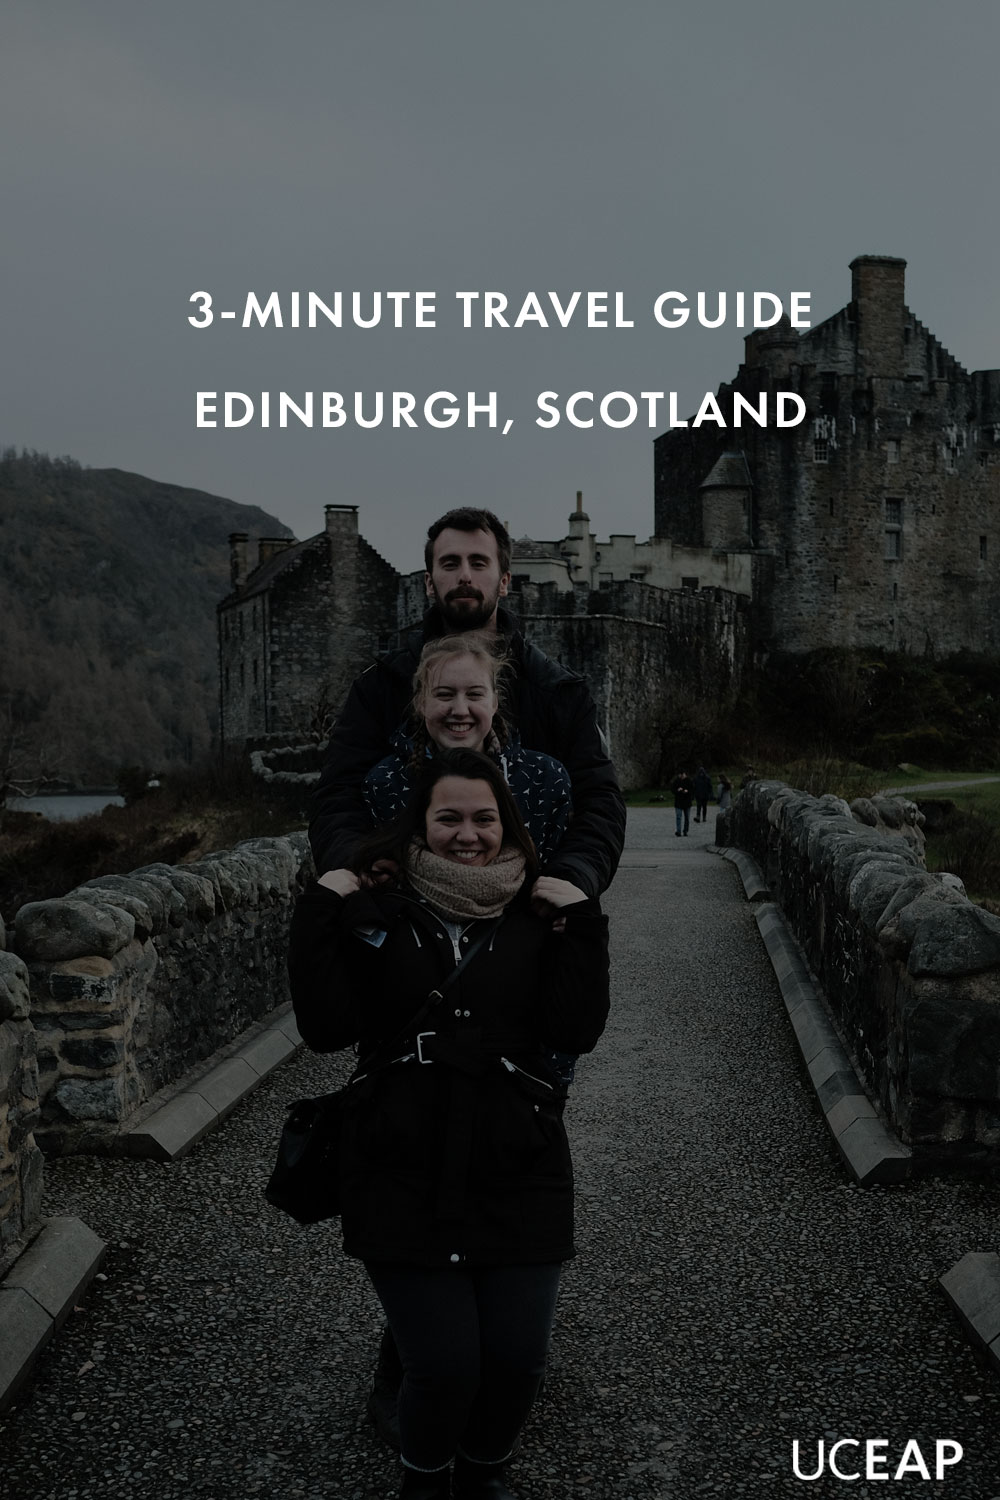 3 students pose for a photo at Eilean Donan Castle in Scotland.